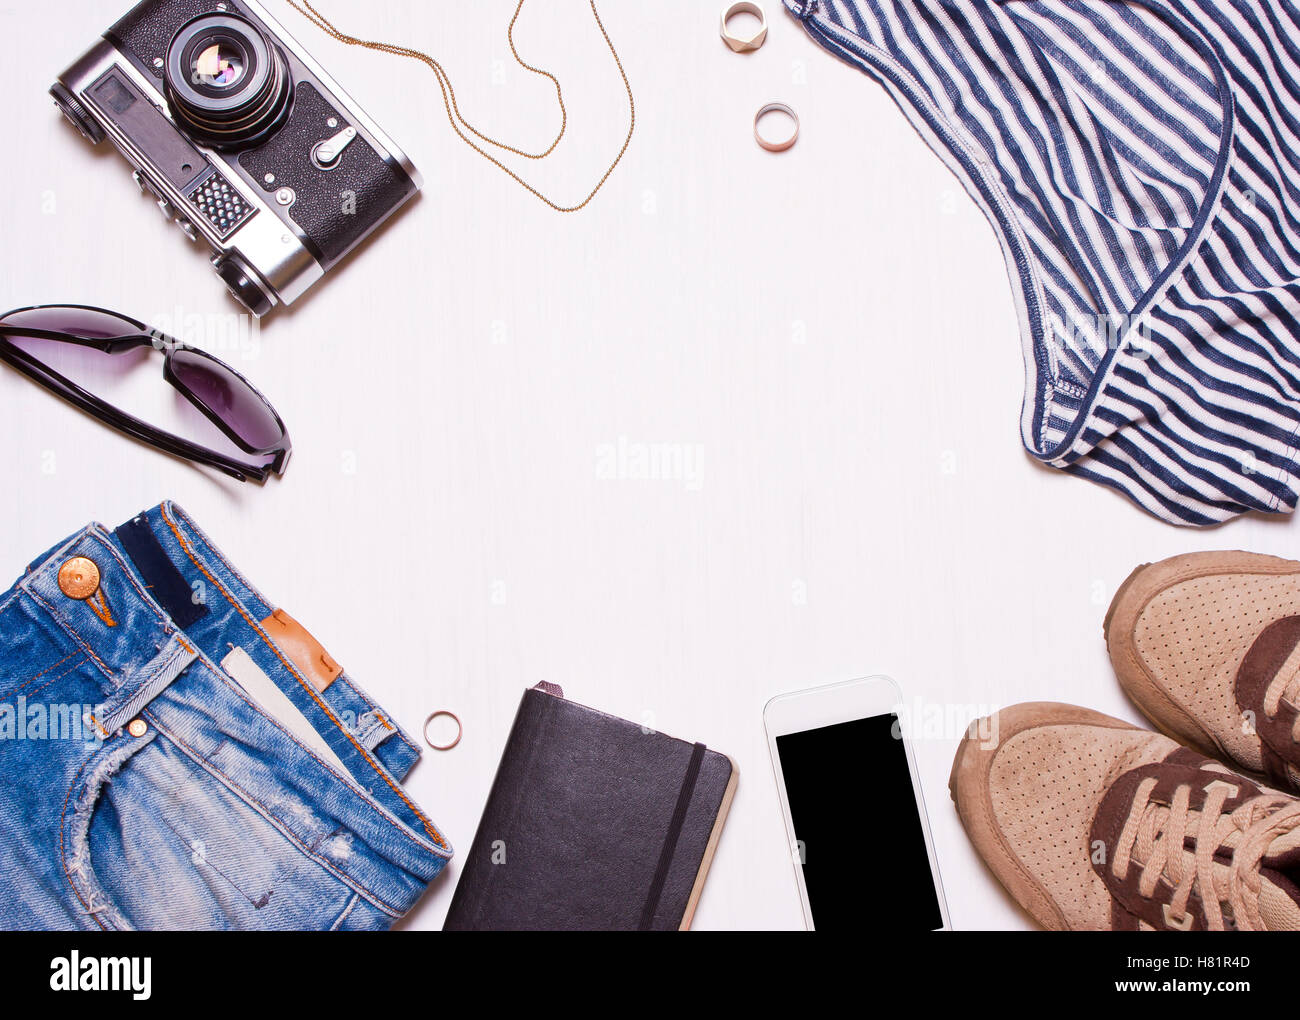 851e114043b Mens Clothing And Accessories Stock Photos   Mens Clothing And ...